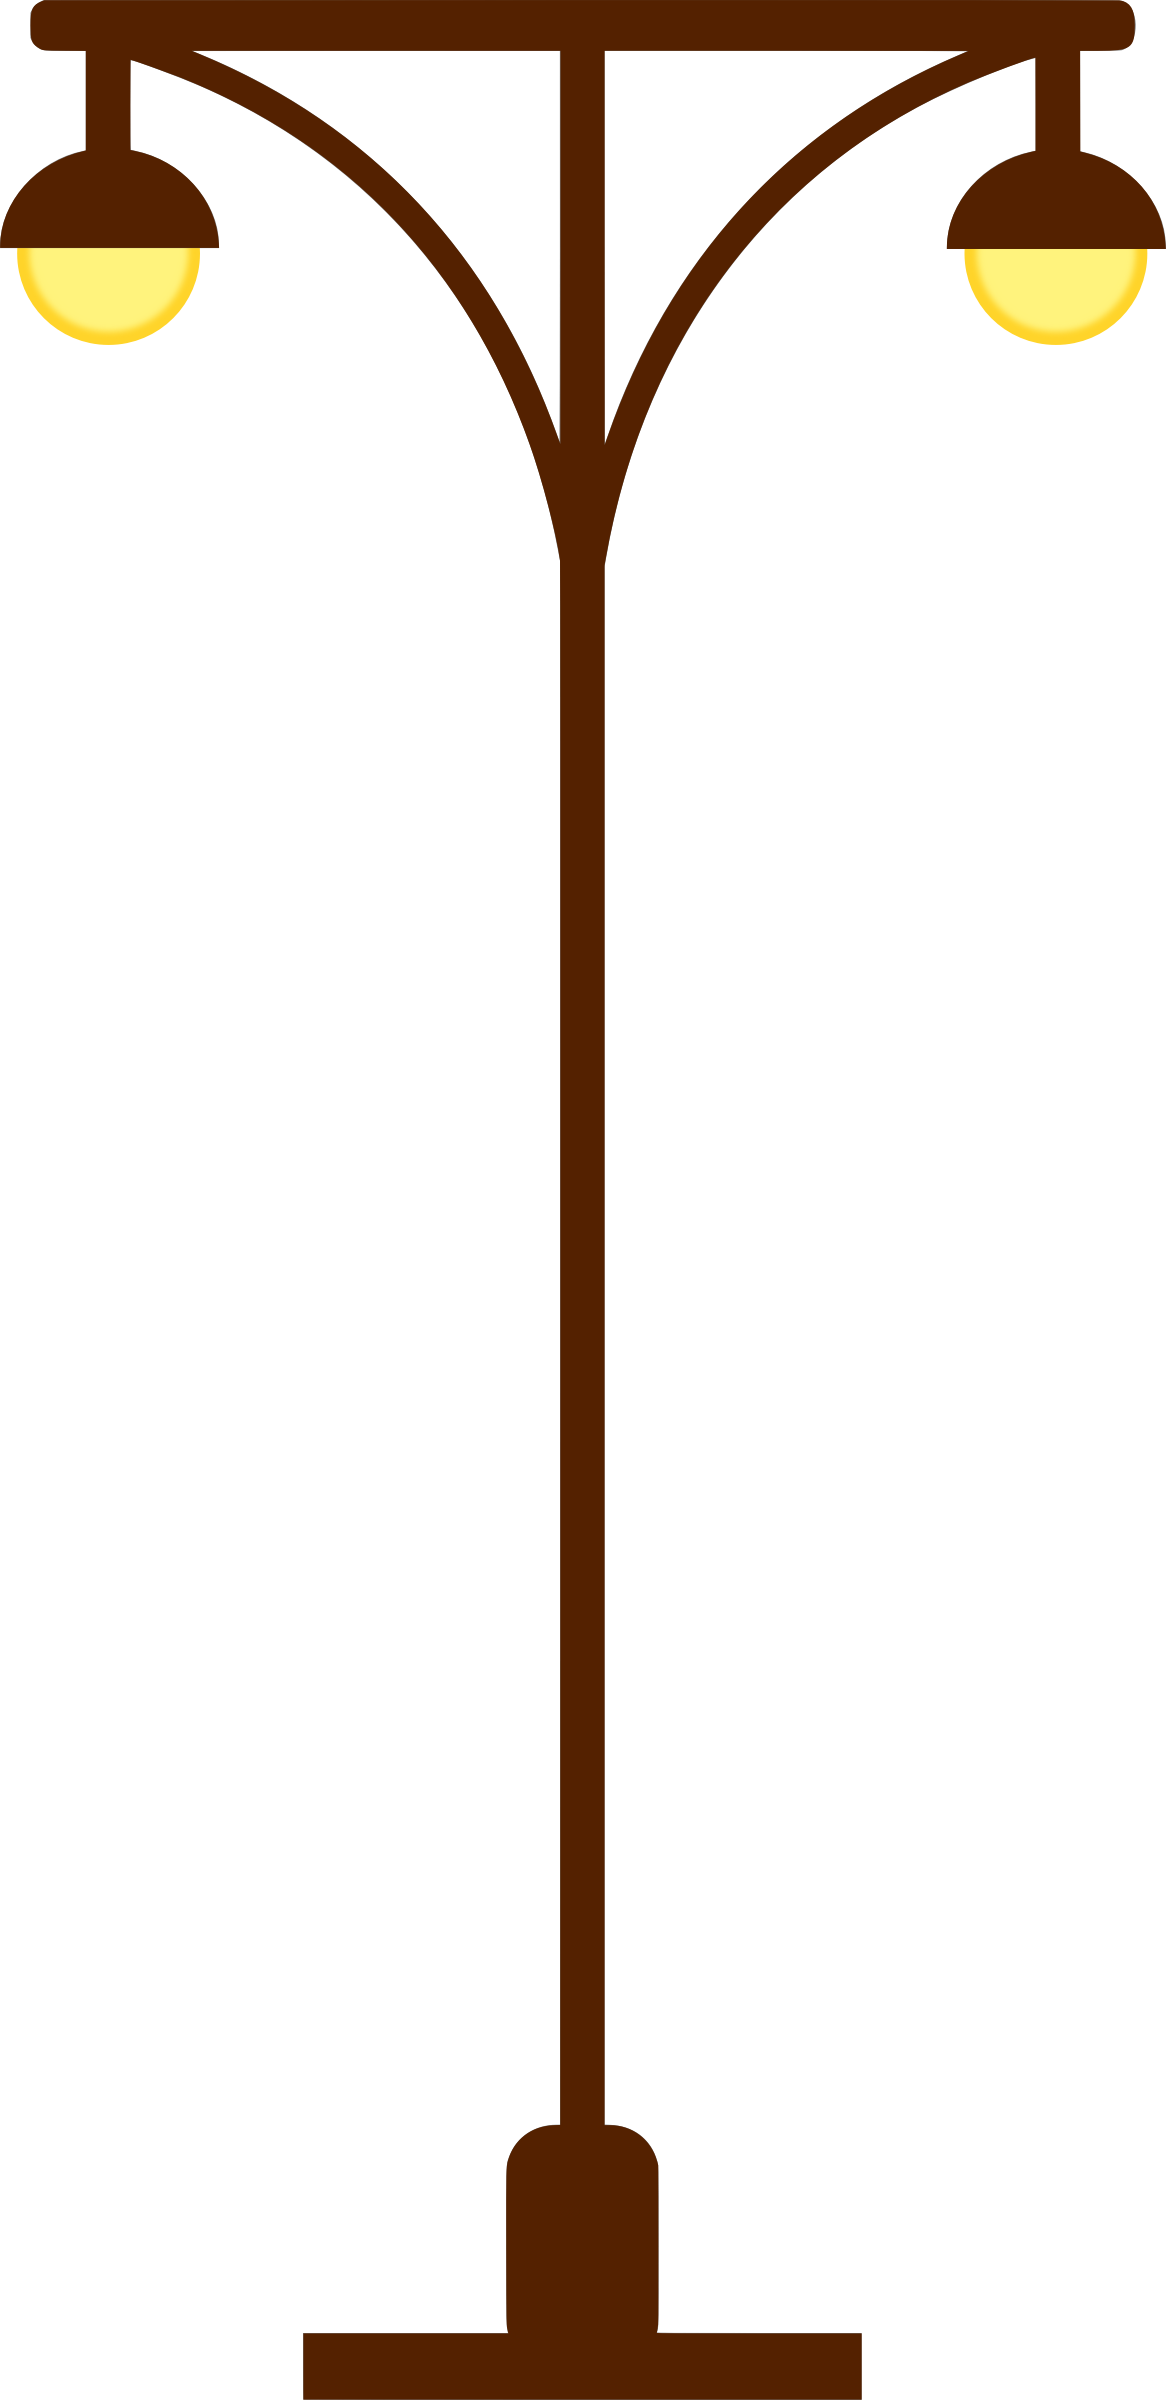 Clipart - Street lamp post vectorized for Street Lamp Post Vector  104xkb